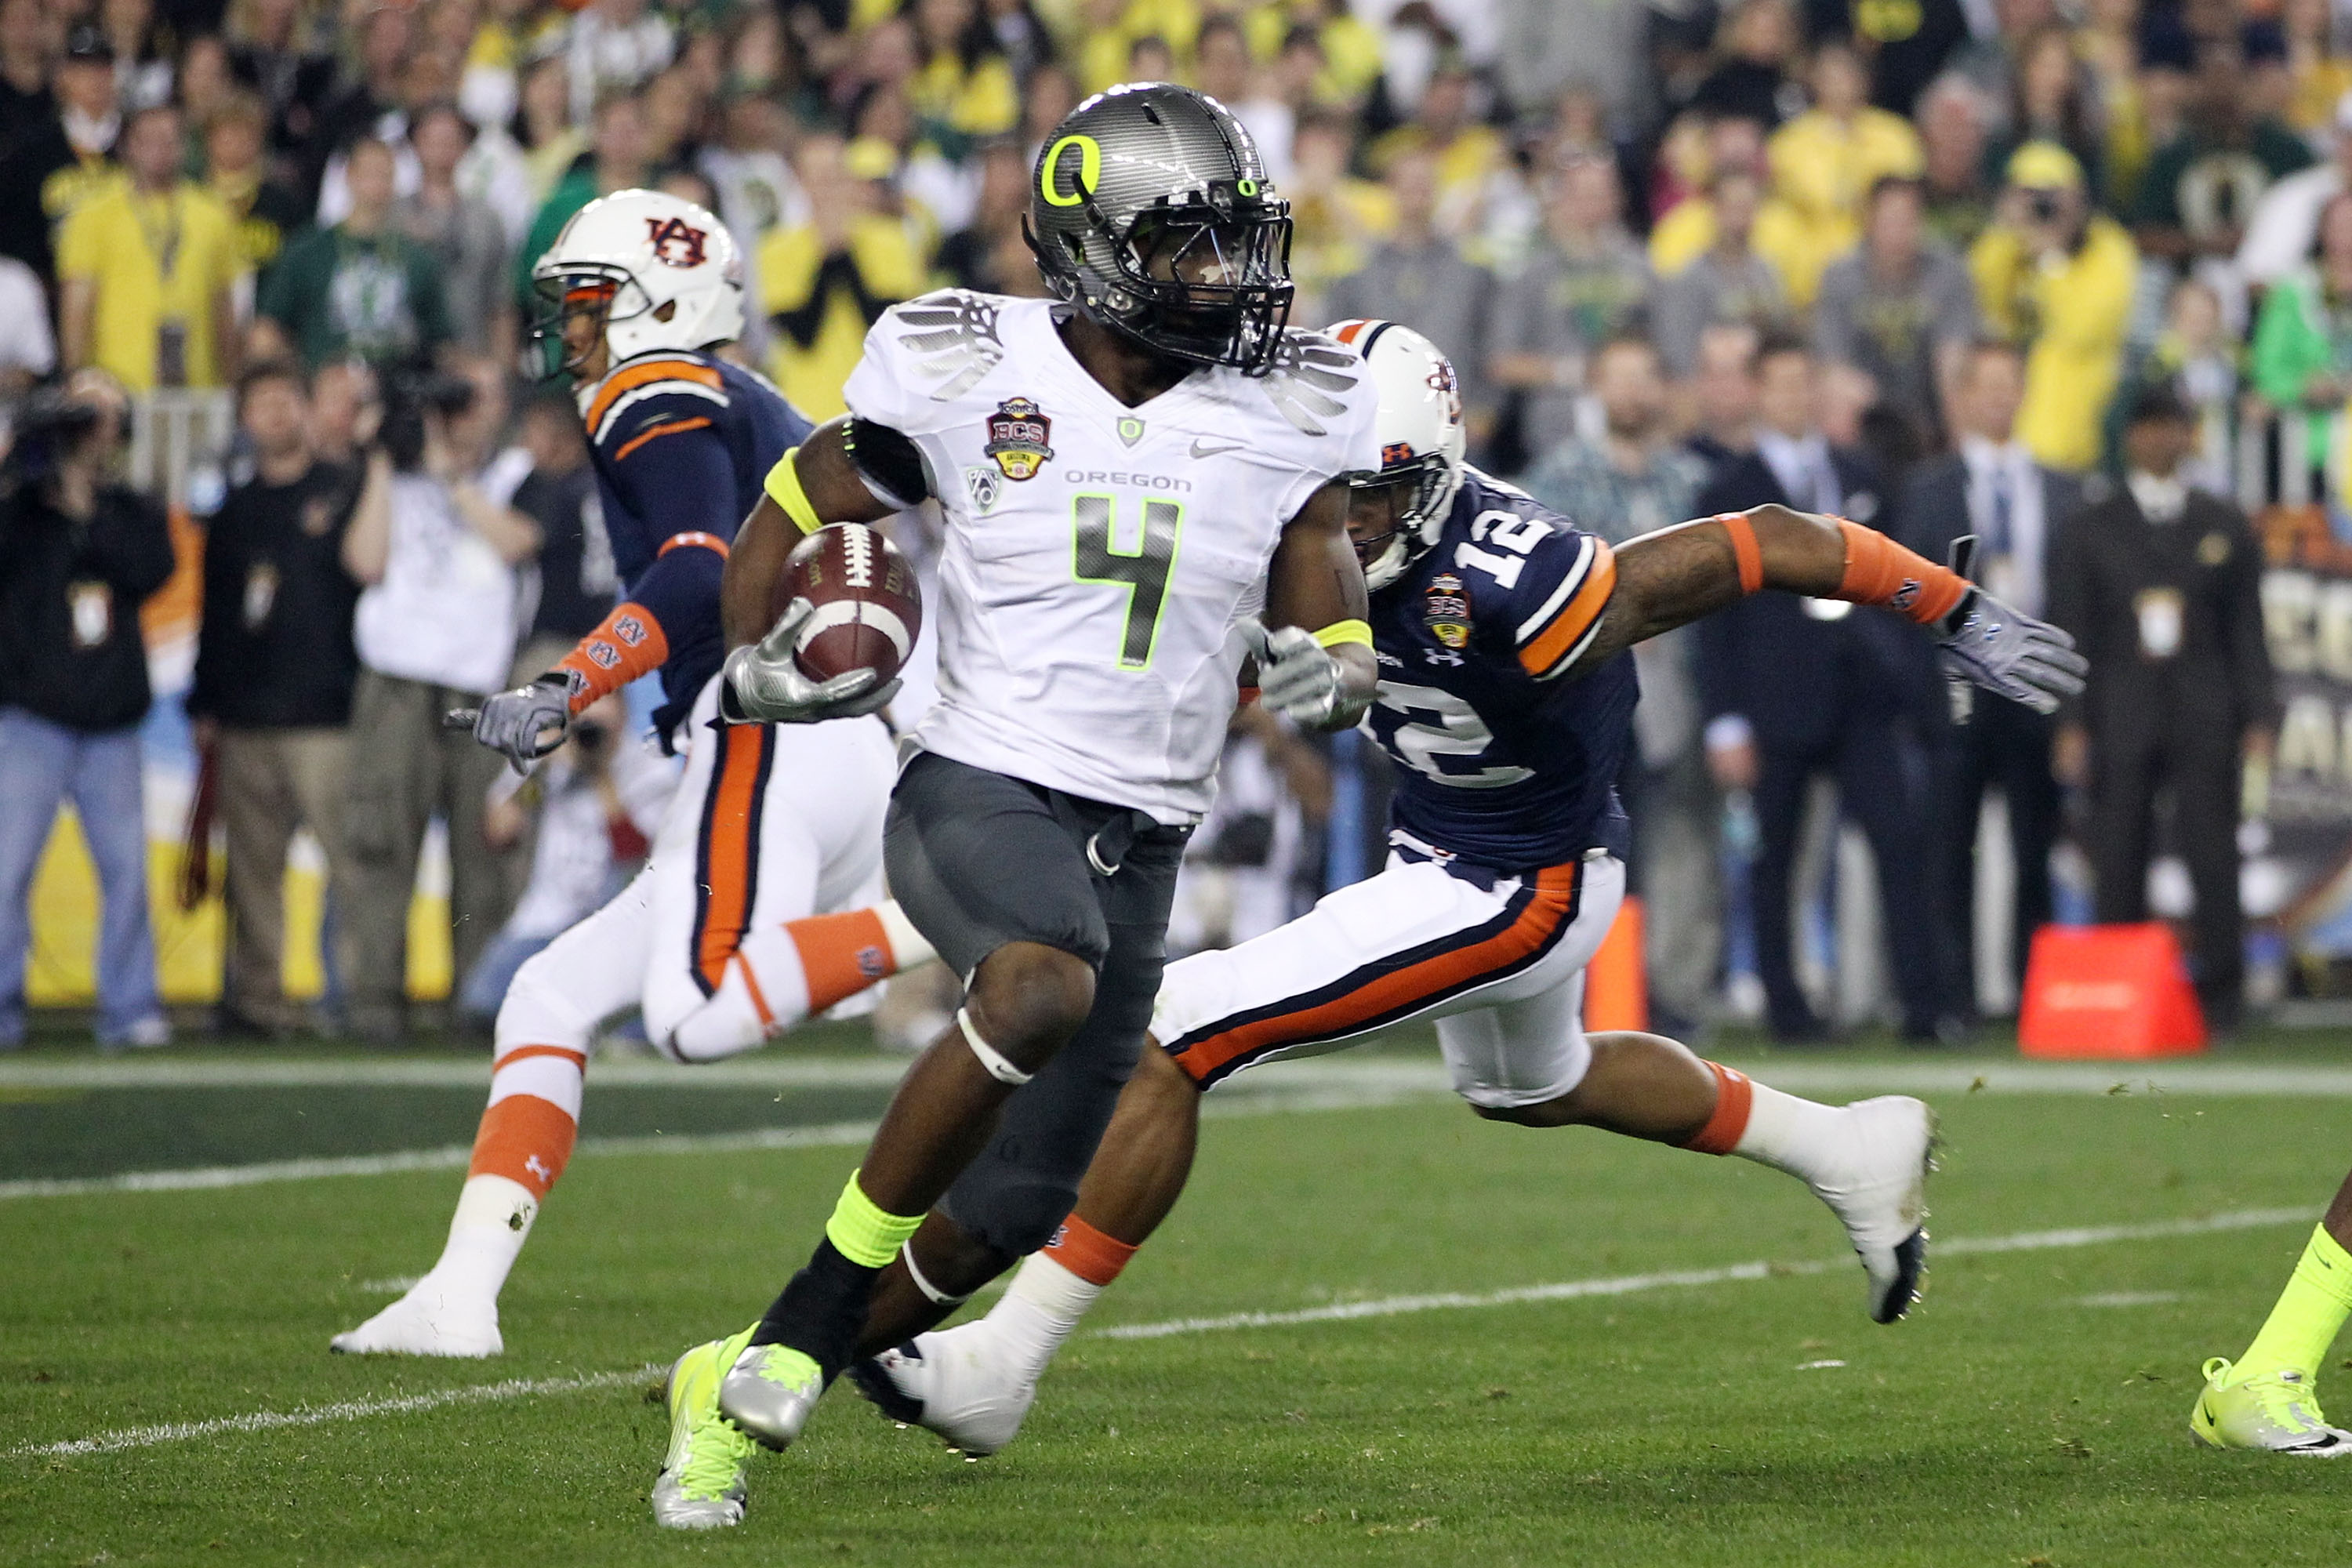 GLENDALE, AZ - JANUARY 10:  Josh Huff #4 of the Oregon Ducks runs down field against the Auburn Tigers during the Tostitos BCS National Championship Game at University of Phoenix Stadium on January 10, 2011 in Glendale, Arizona.  (Photo by Christian Peter